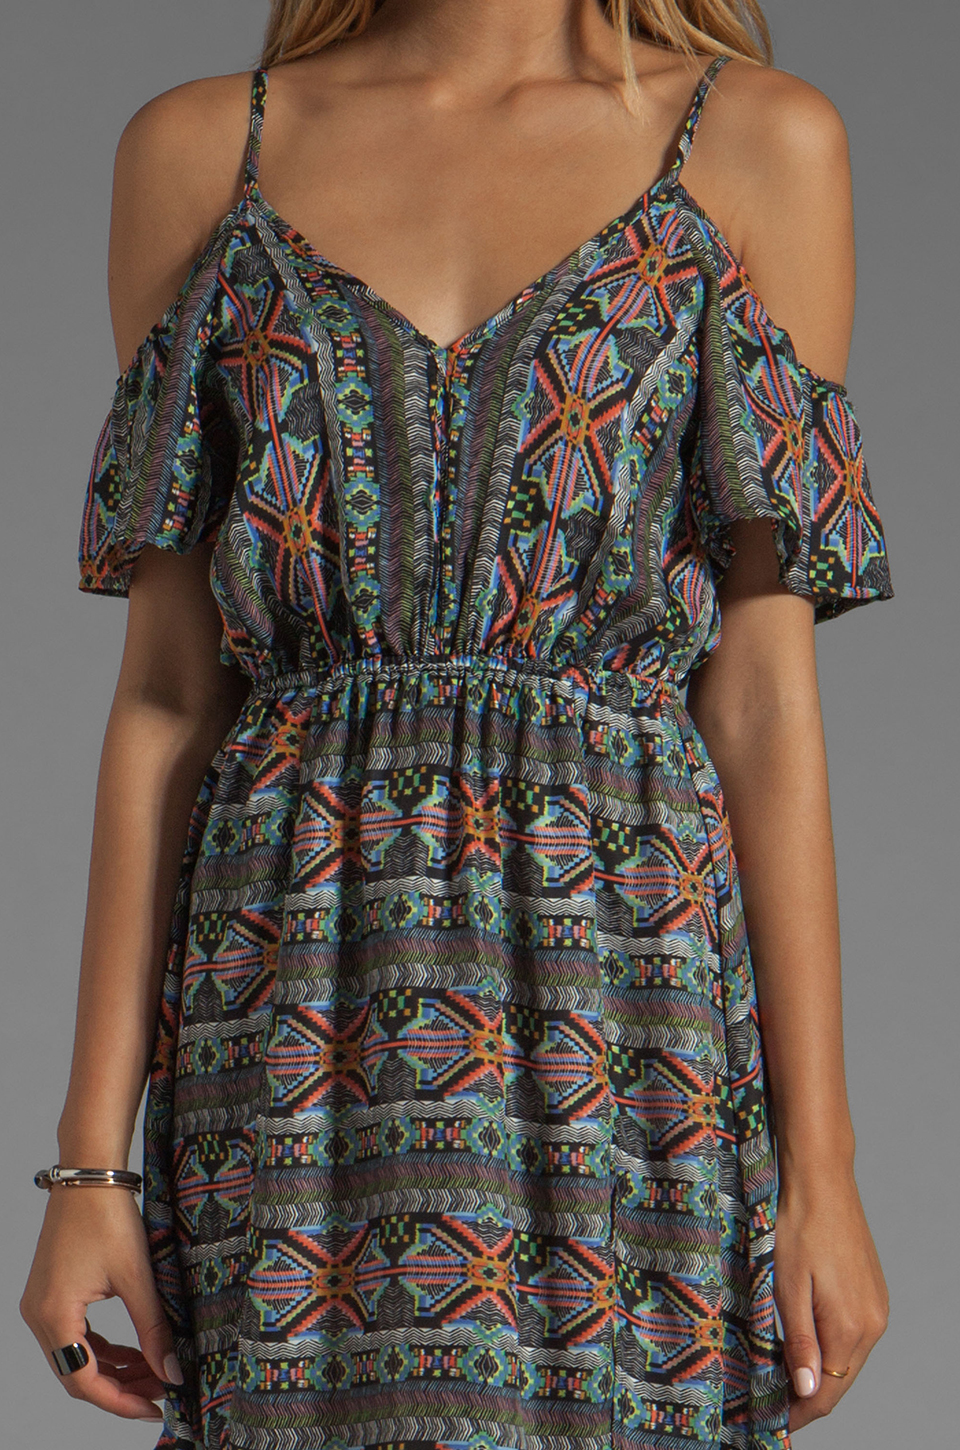 L*SPACE Tribe Cold Shoulder Dress in Multi